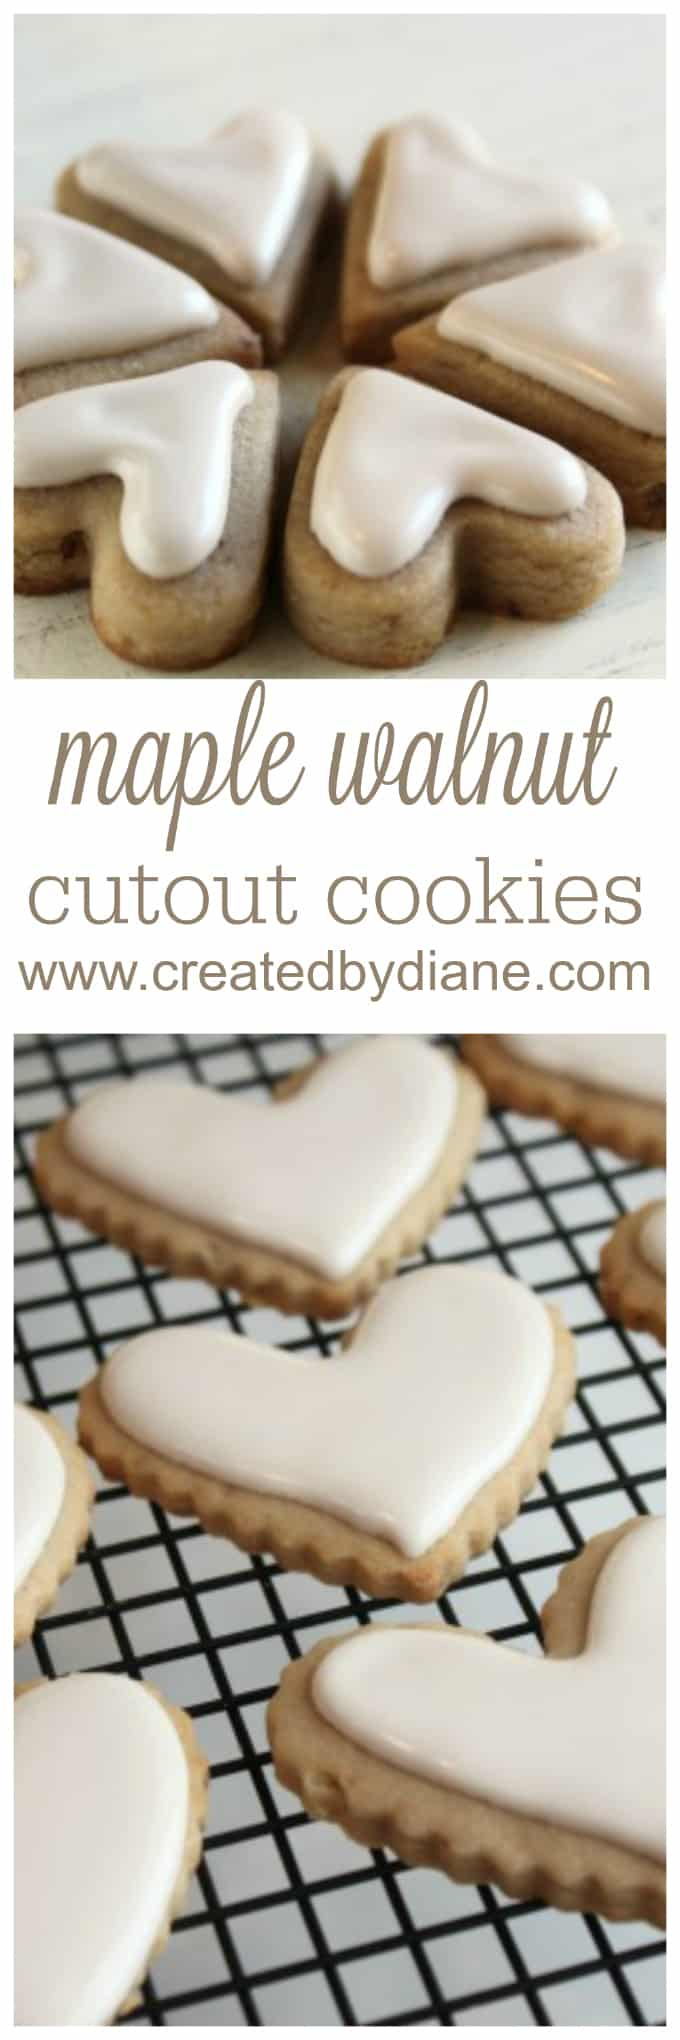 maple walnut cut out cookies www.createdbydiane.com